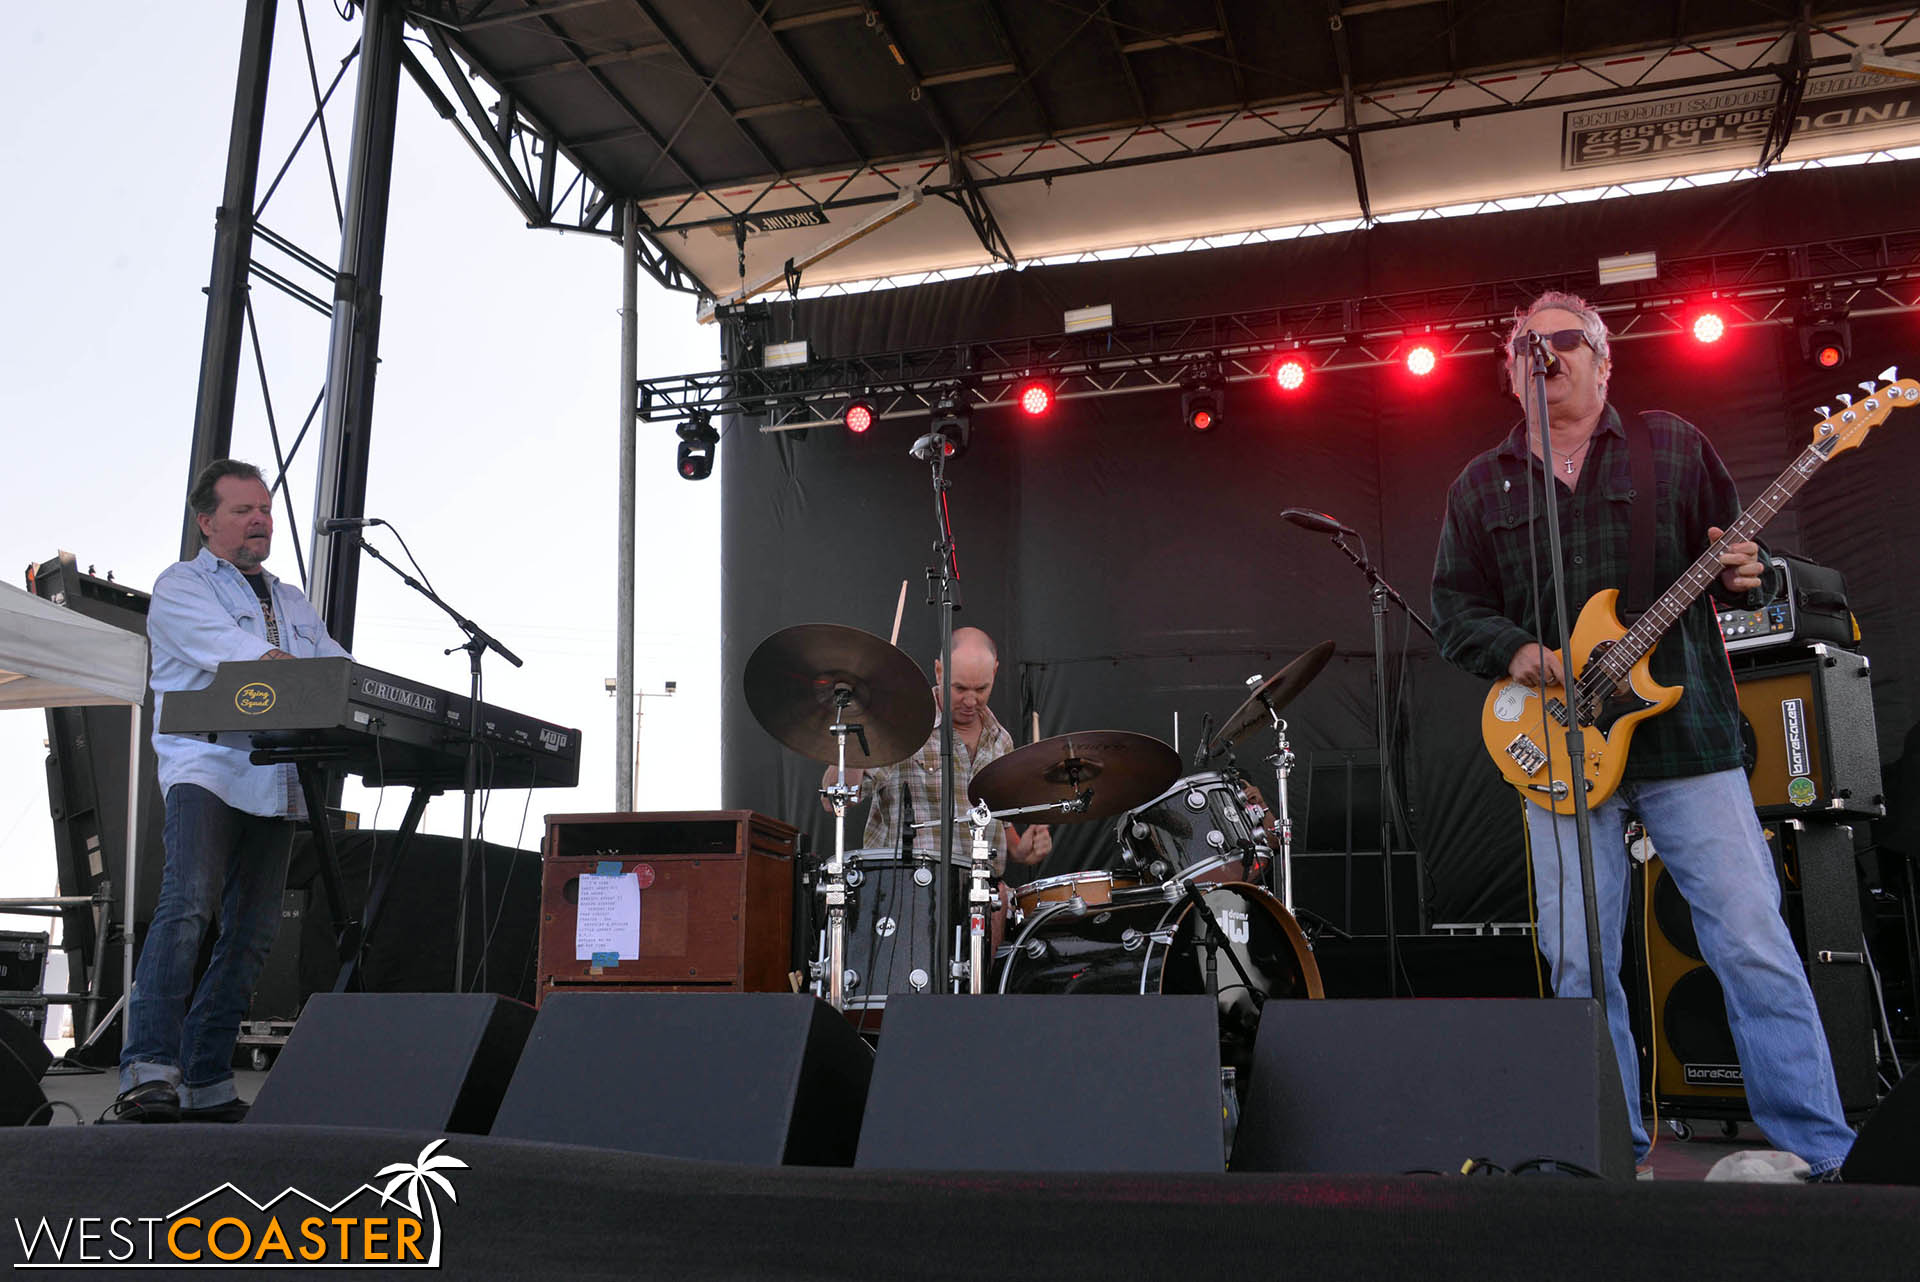 Mike Watt performing at GnarlyTown Festival.